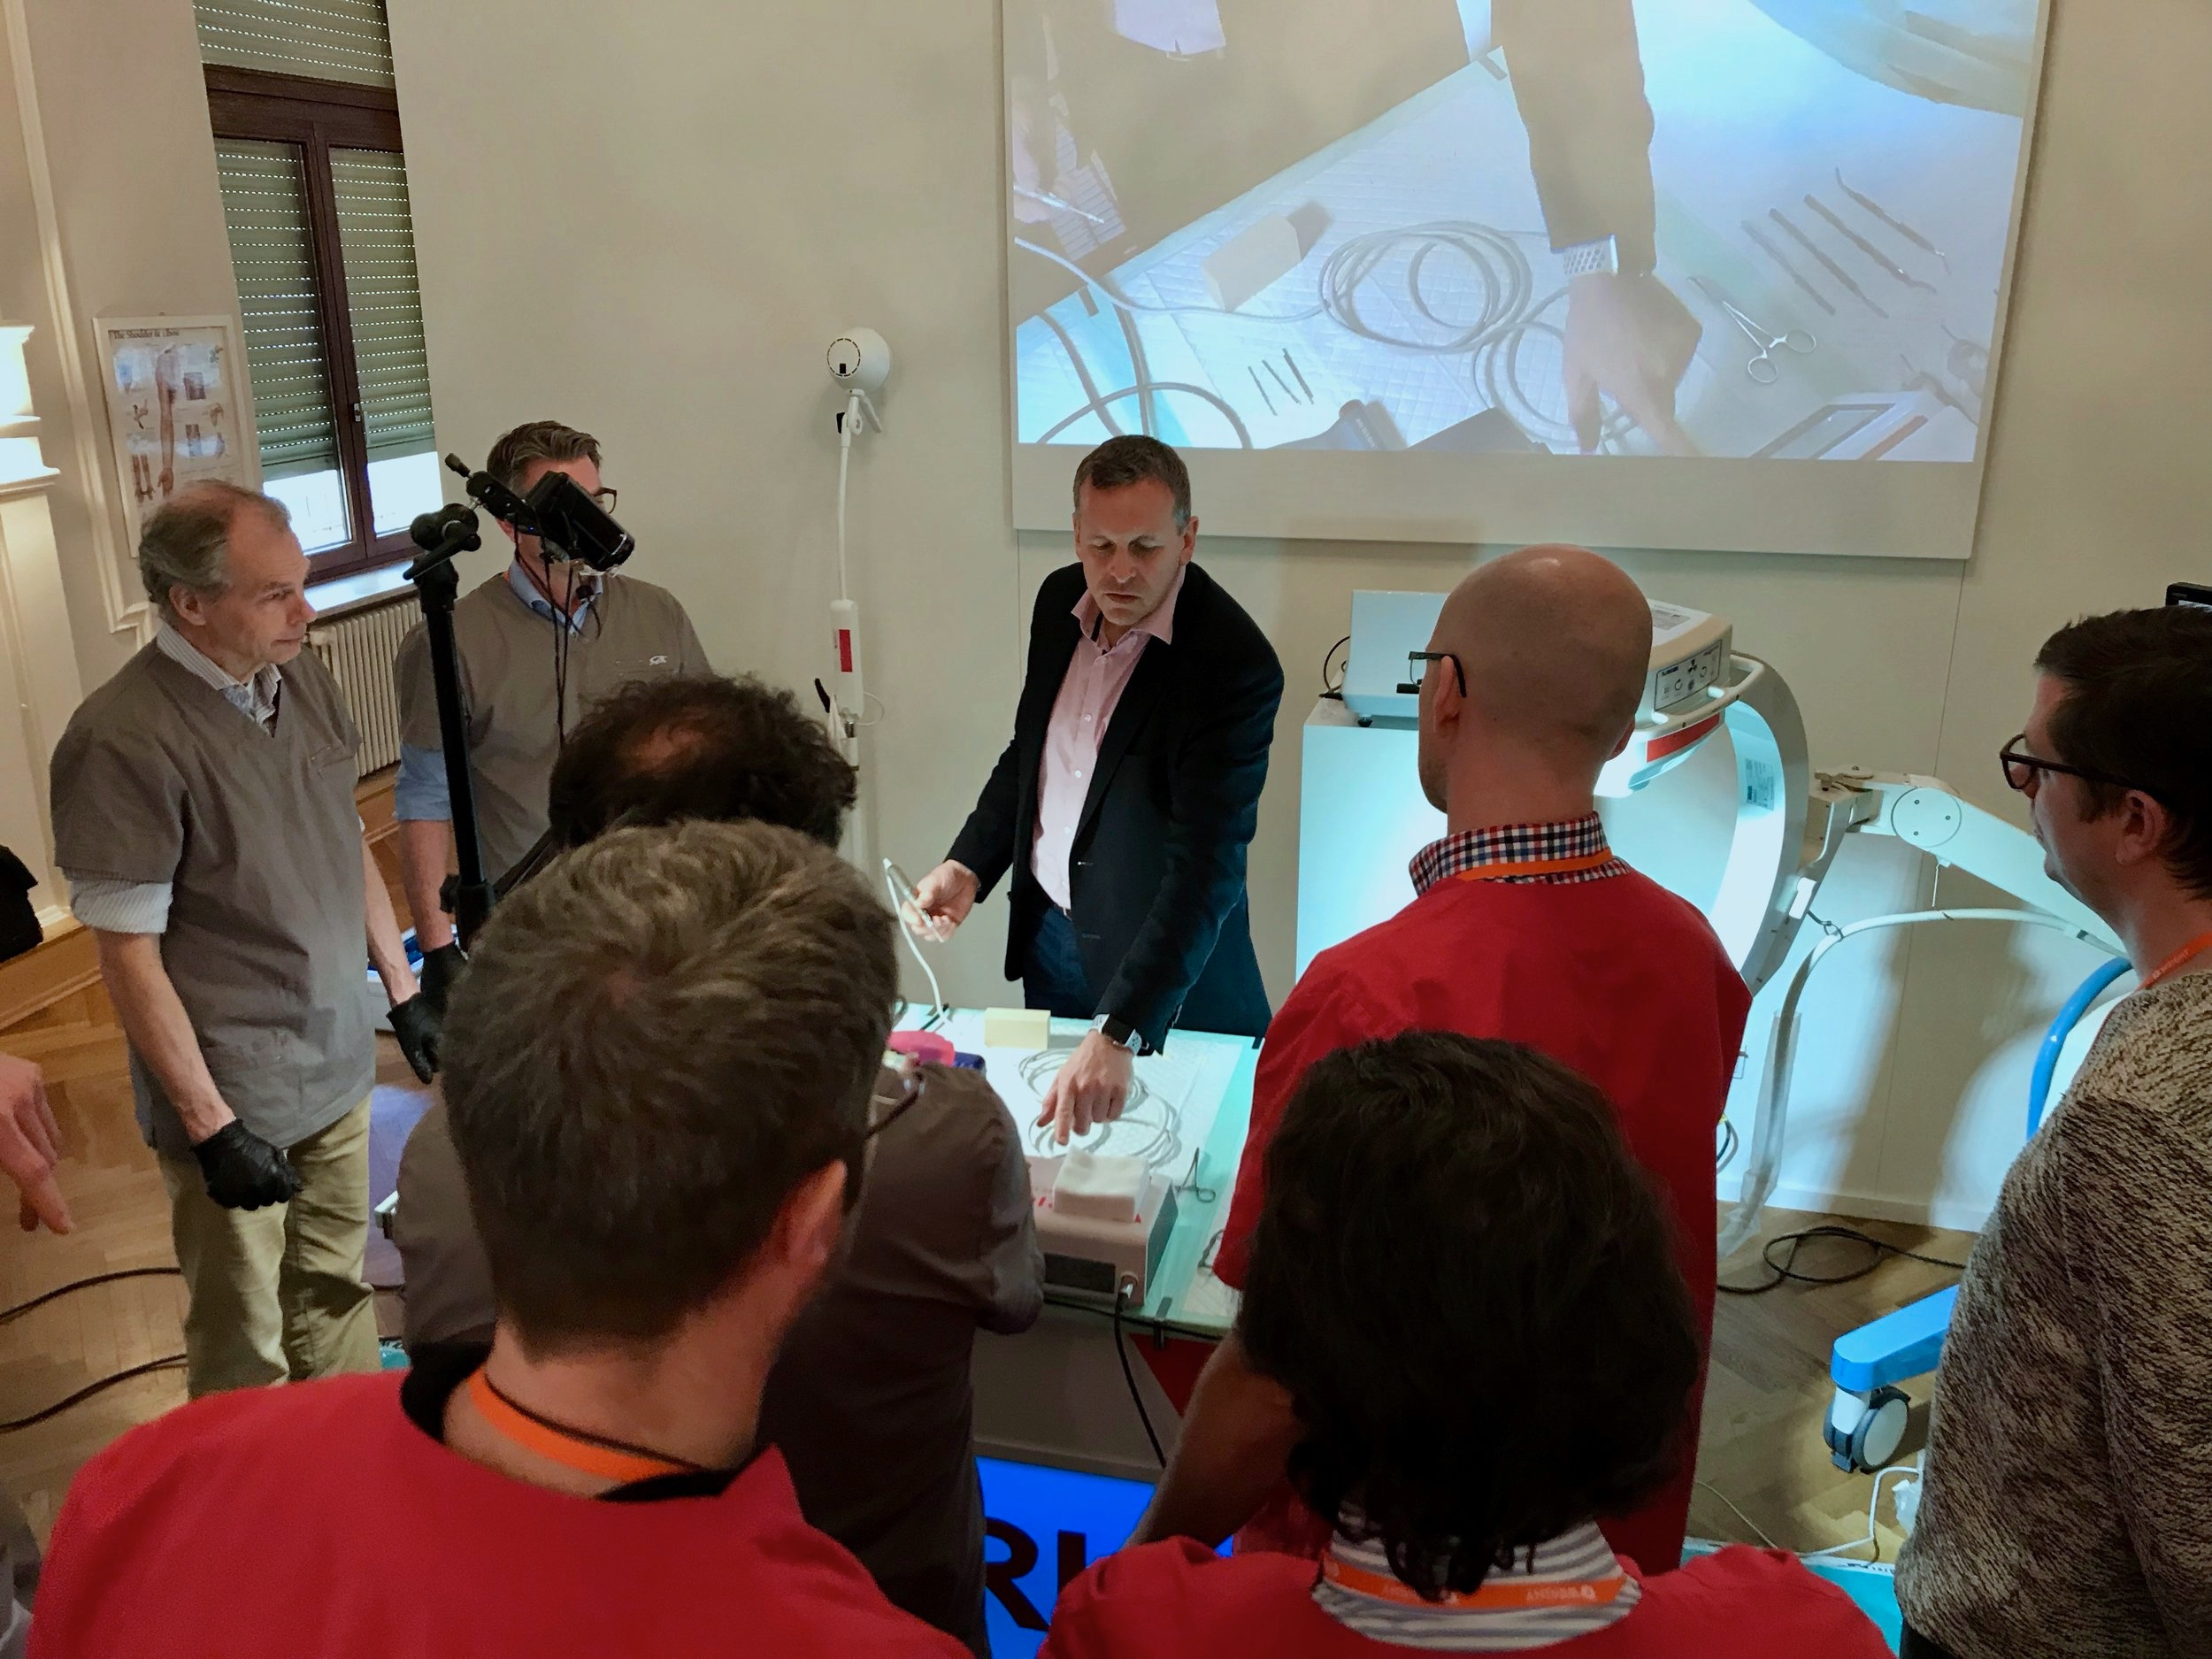 Mr Redfern training surgeons at his course in Germany